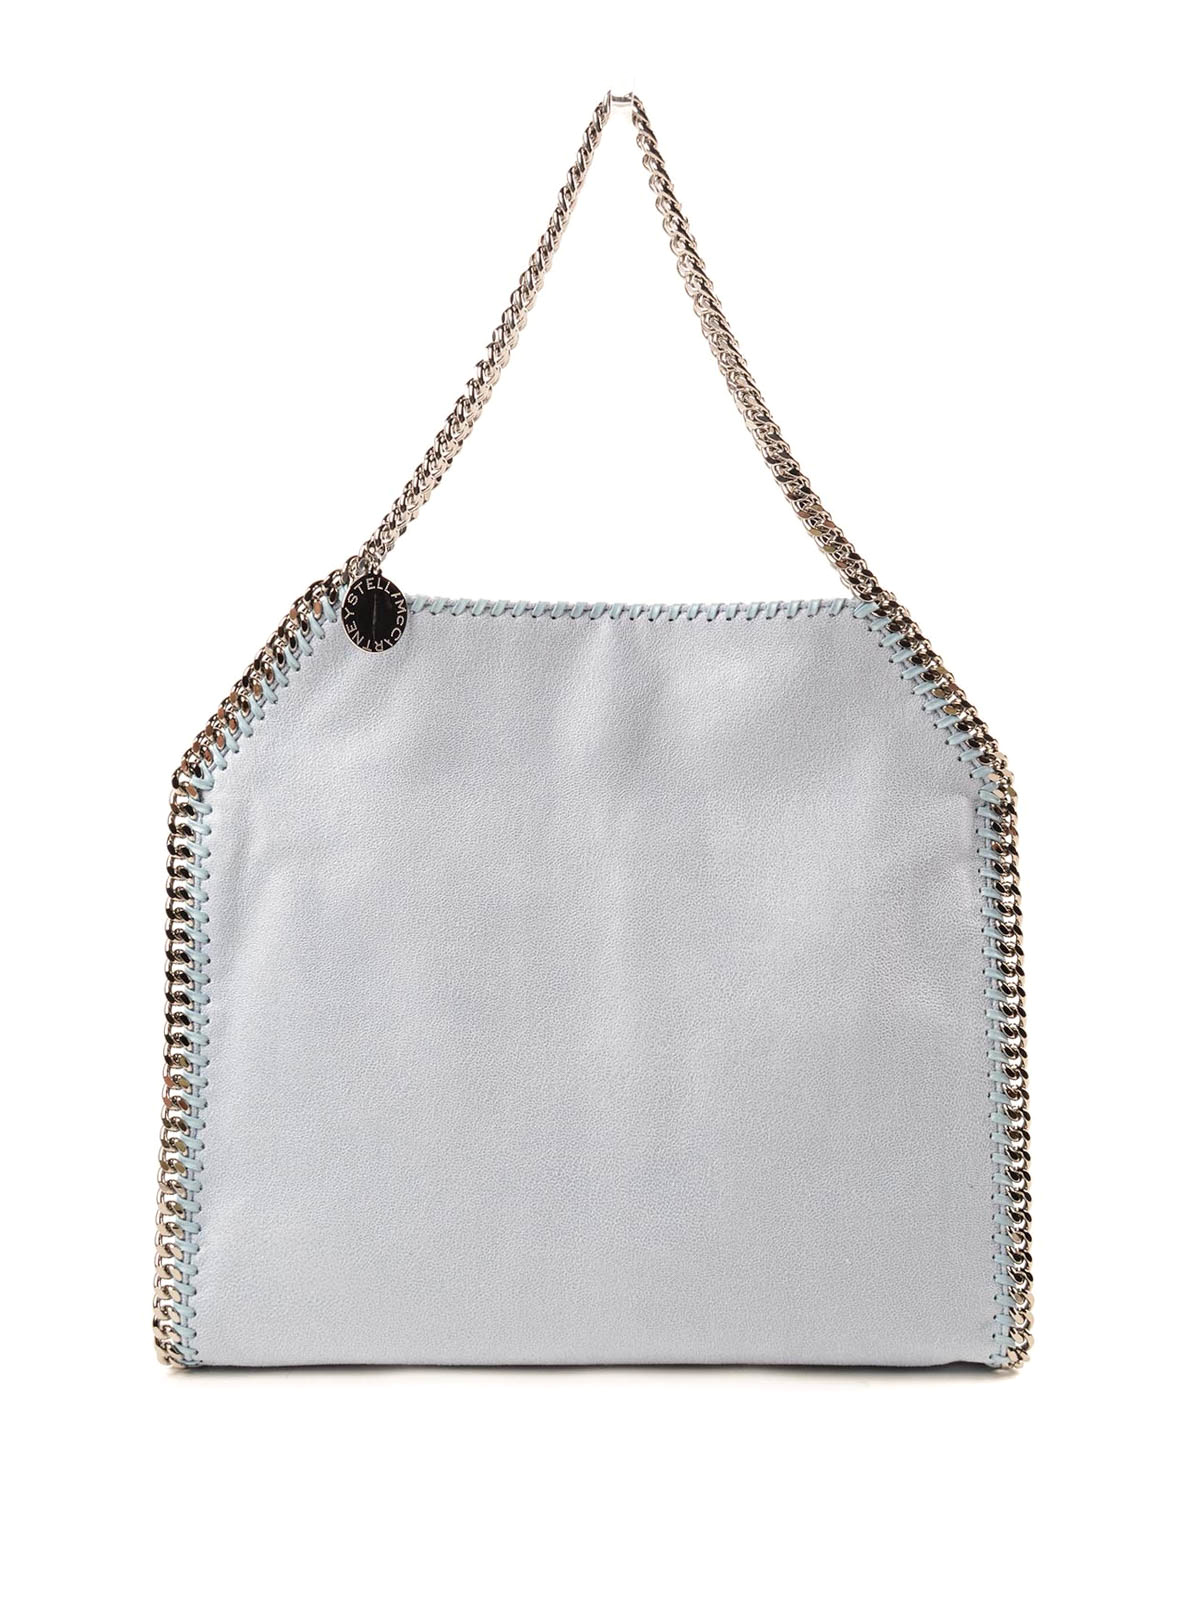 554870b3cd Stella Mccartney - Falabella Chamois small tote - totes bags ...